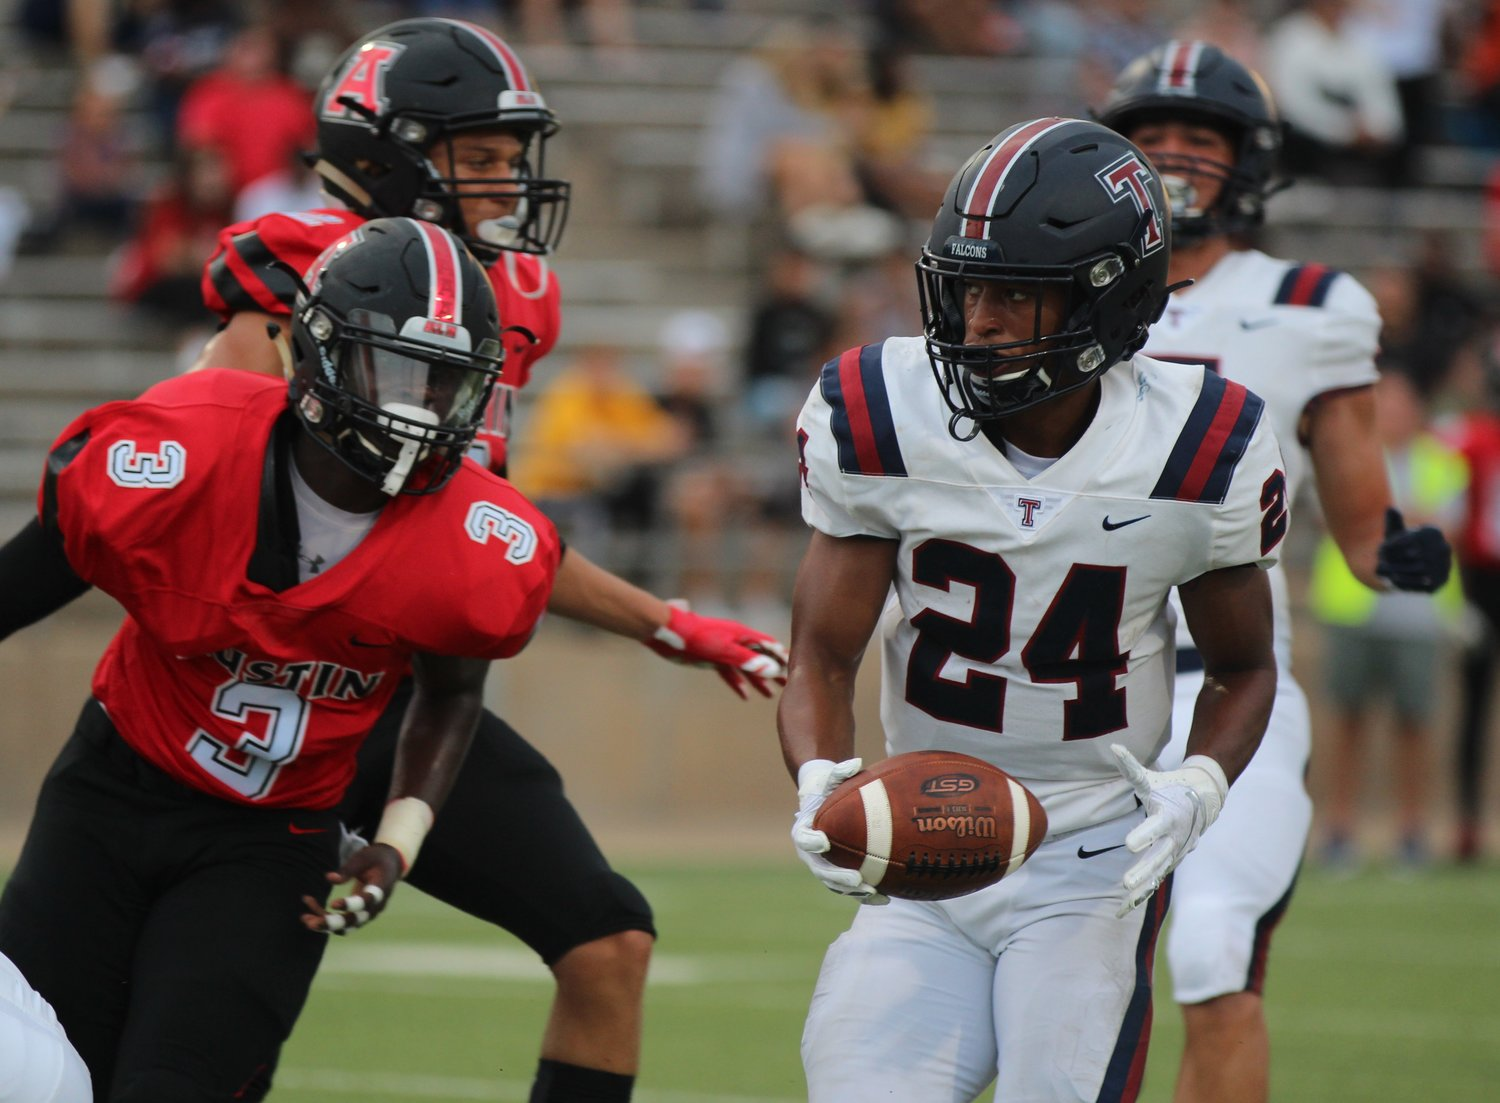 Tompkins' R.J. Smith carries the ball during a game against Fort Bend Austin on Aug. 31 at Mercer Stadium.